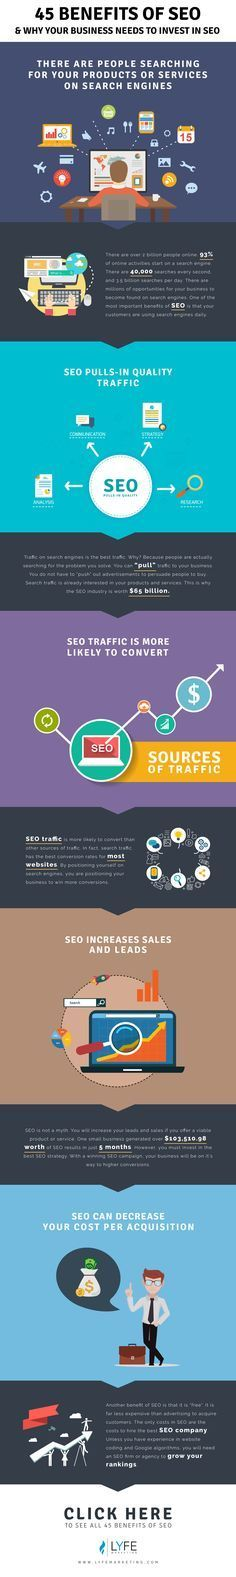 What are the benefits of SEO? The first benefit is that your customers use it daily. 93% of online activities start with a search engine. Secondly, the traffic from search engines are high quality. SEO Traffic is more likely to convert than any other source of traffic. This increase in traffic can increase your leads and sales, which will ultimately decrease your cost-per-acquistion. This SEO infographic explains the top benefits. Read our blog for ALL 45 benefits of SEO!